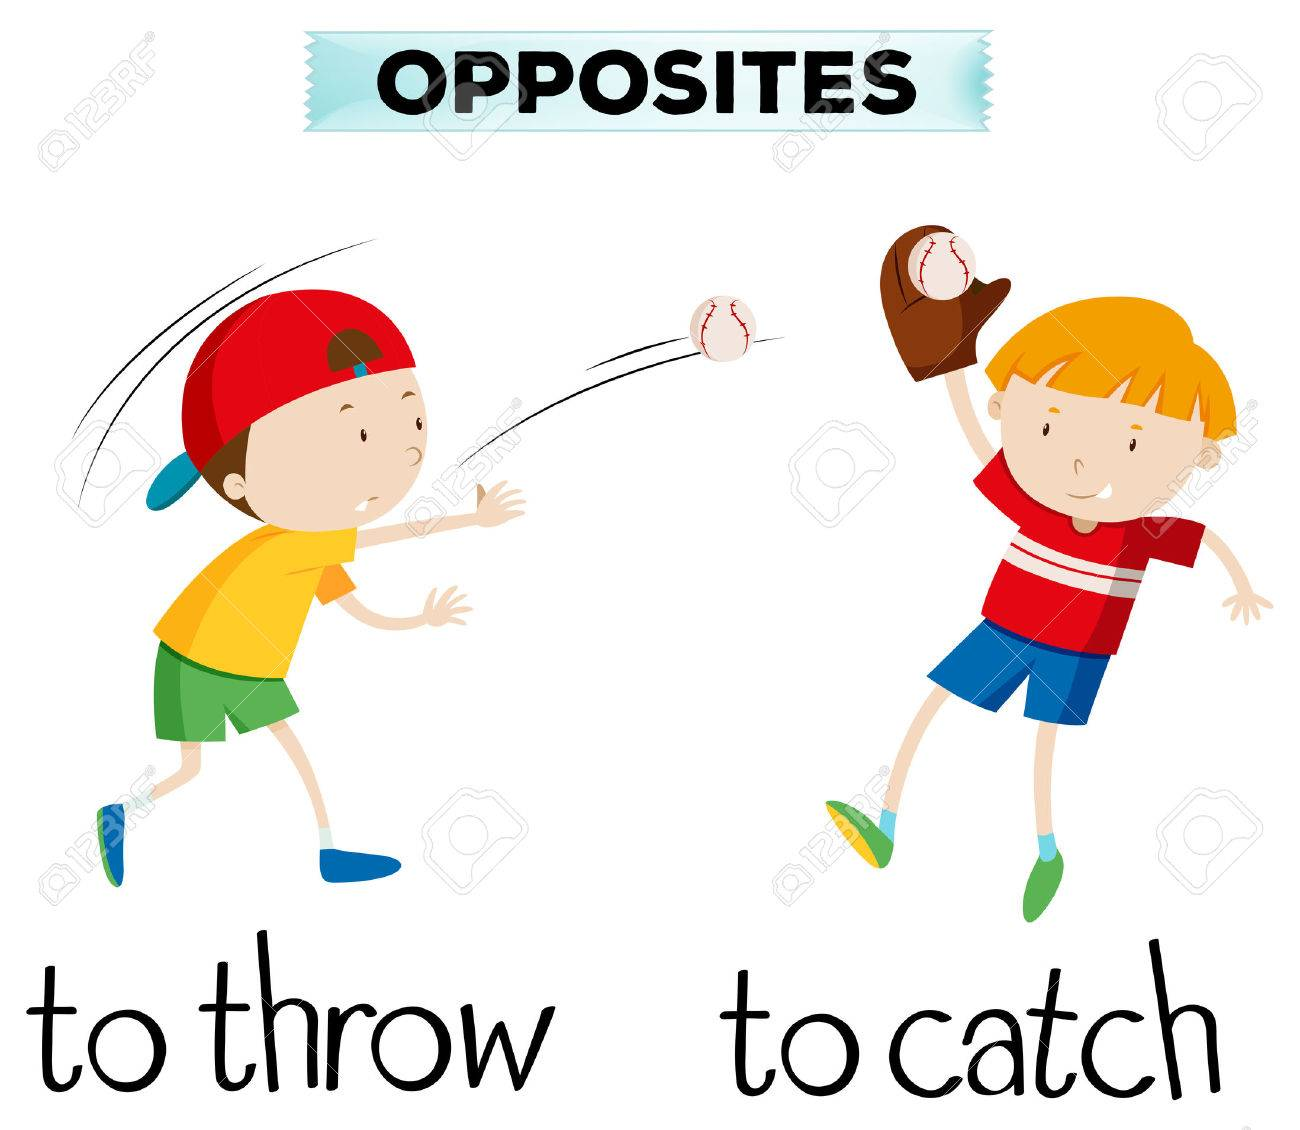 Opposite words with throw and catch illustration - 71261209